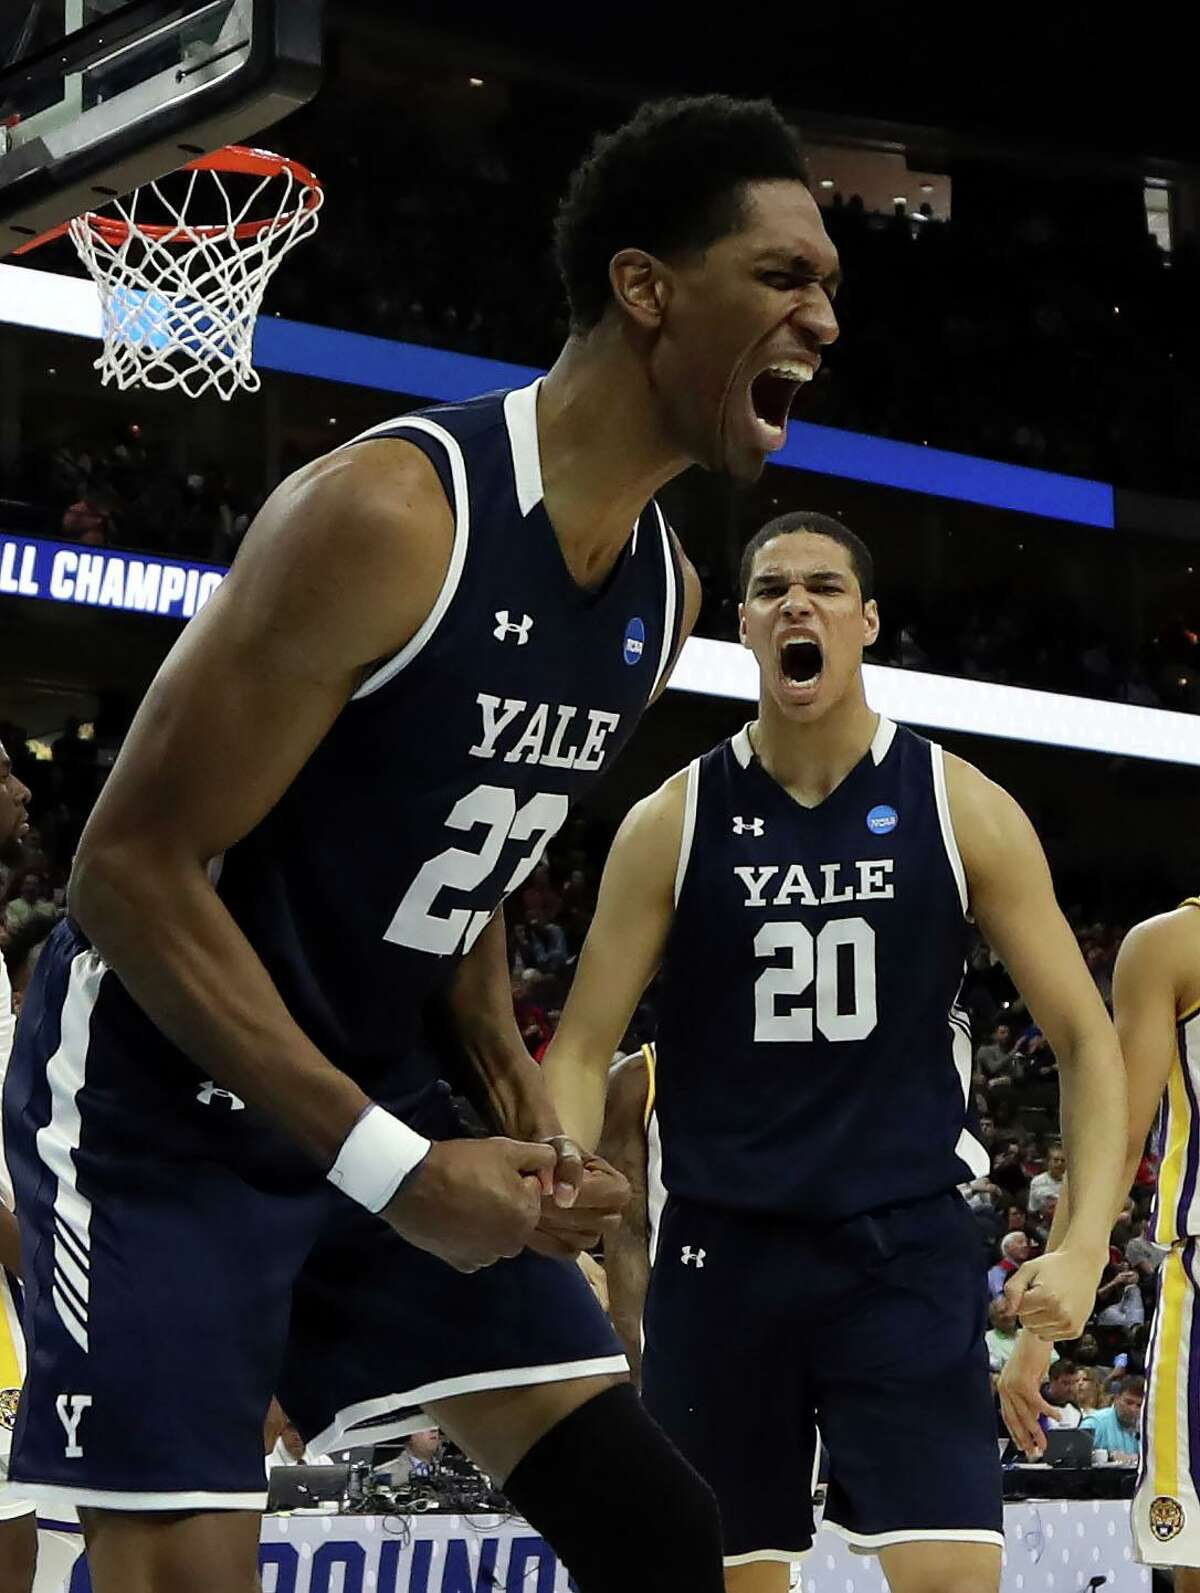 JACKSONVILLE, FLORIDA - MARCH 21: Jordan Bruner #23 and Paul Atkinson #20 of the Yale Bulldogs react in the second half of play against the LSU Tigers during the first round of the 2019 NCAA Men's Basketball Tournament at VyStar Jacksonville Veterans Memorial Arena on March 21, 2019 in Jacksonville, Florida. (Photo by Sam Greenwood/Getty Images)